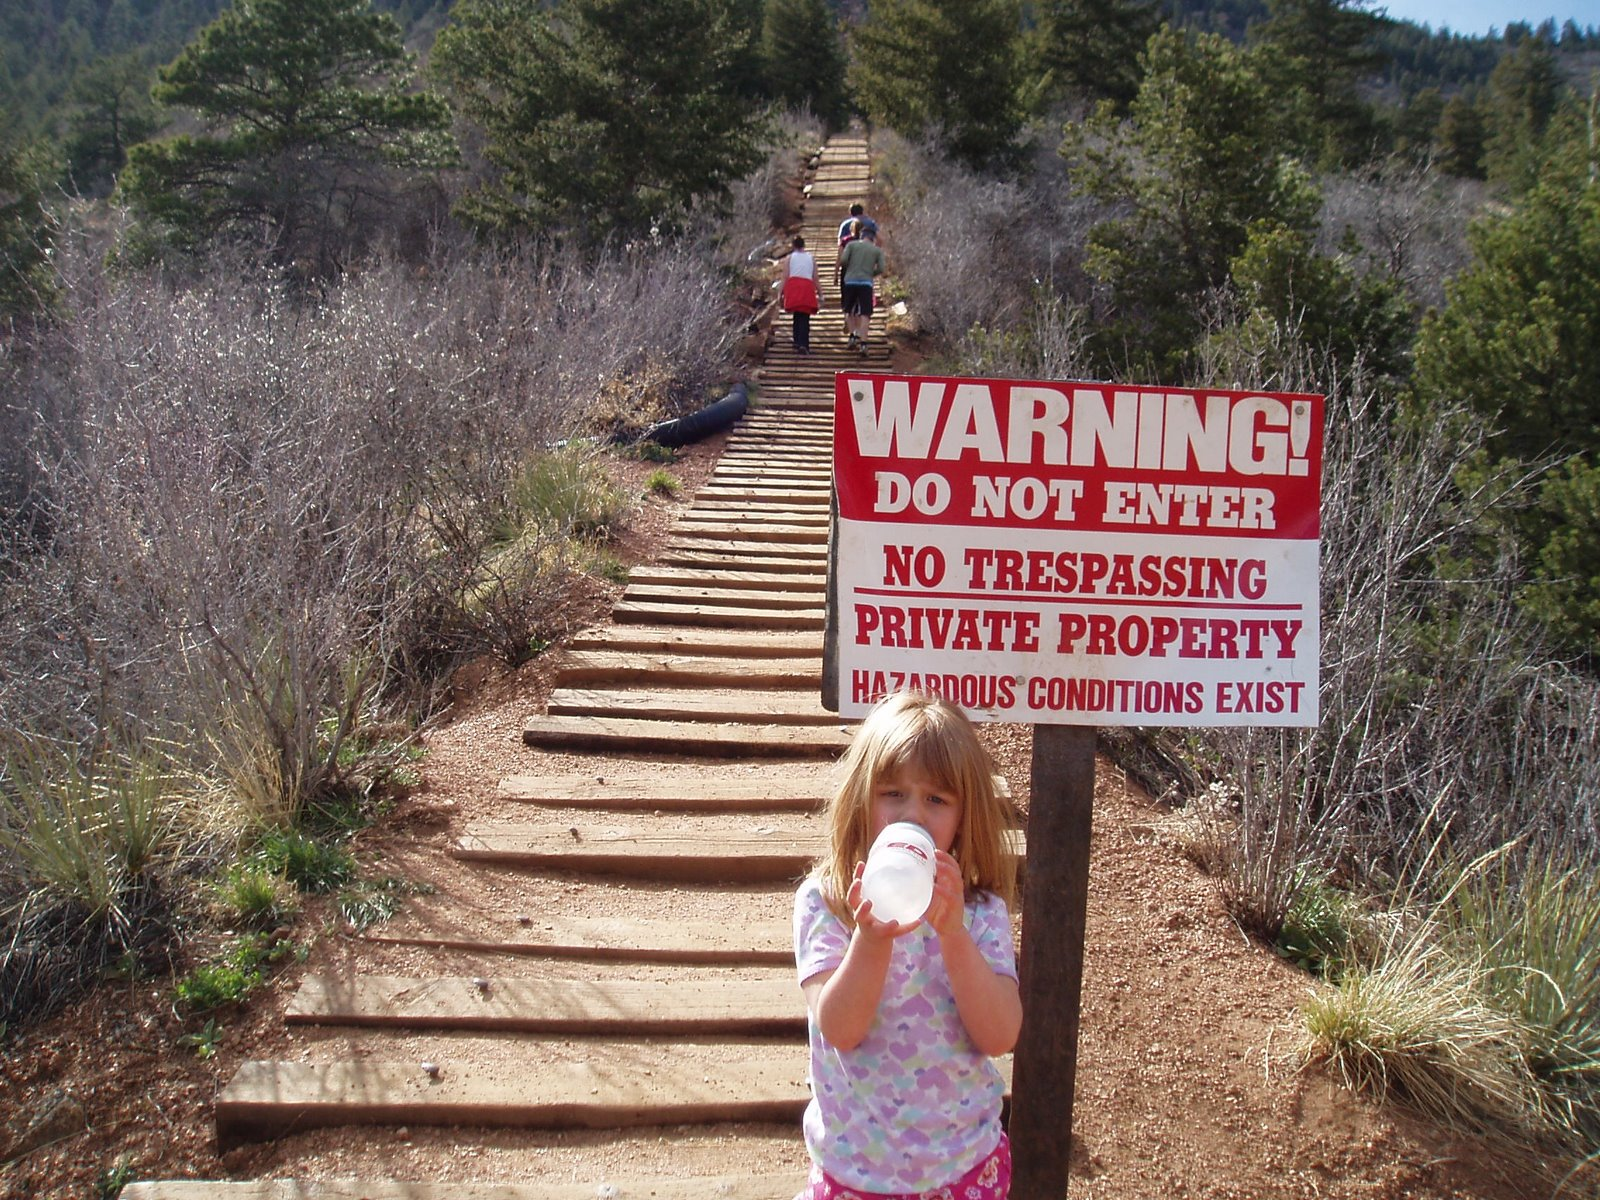 Photo of people trespassing